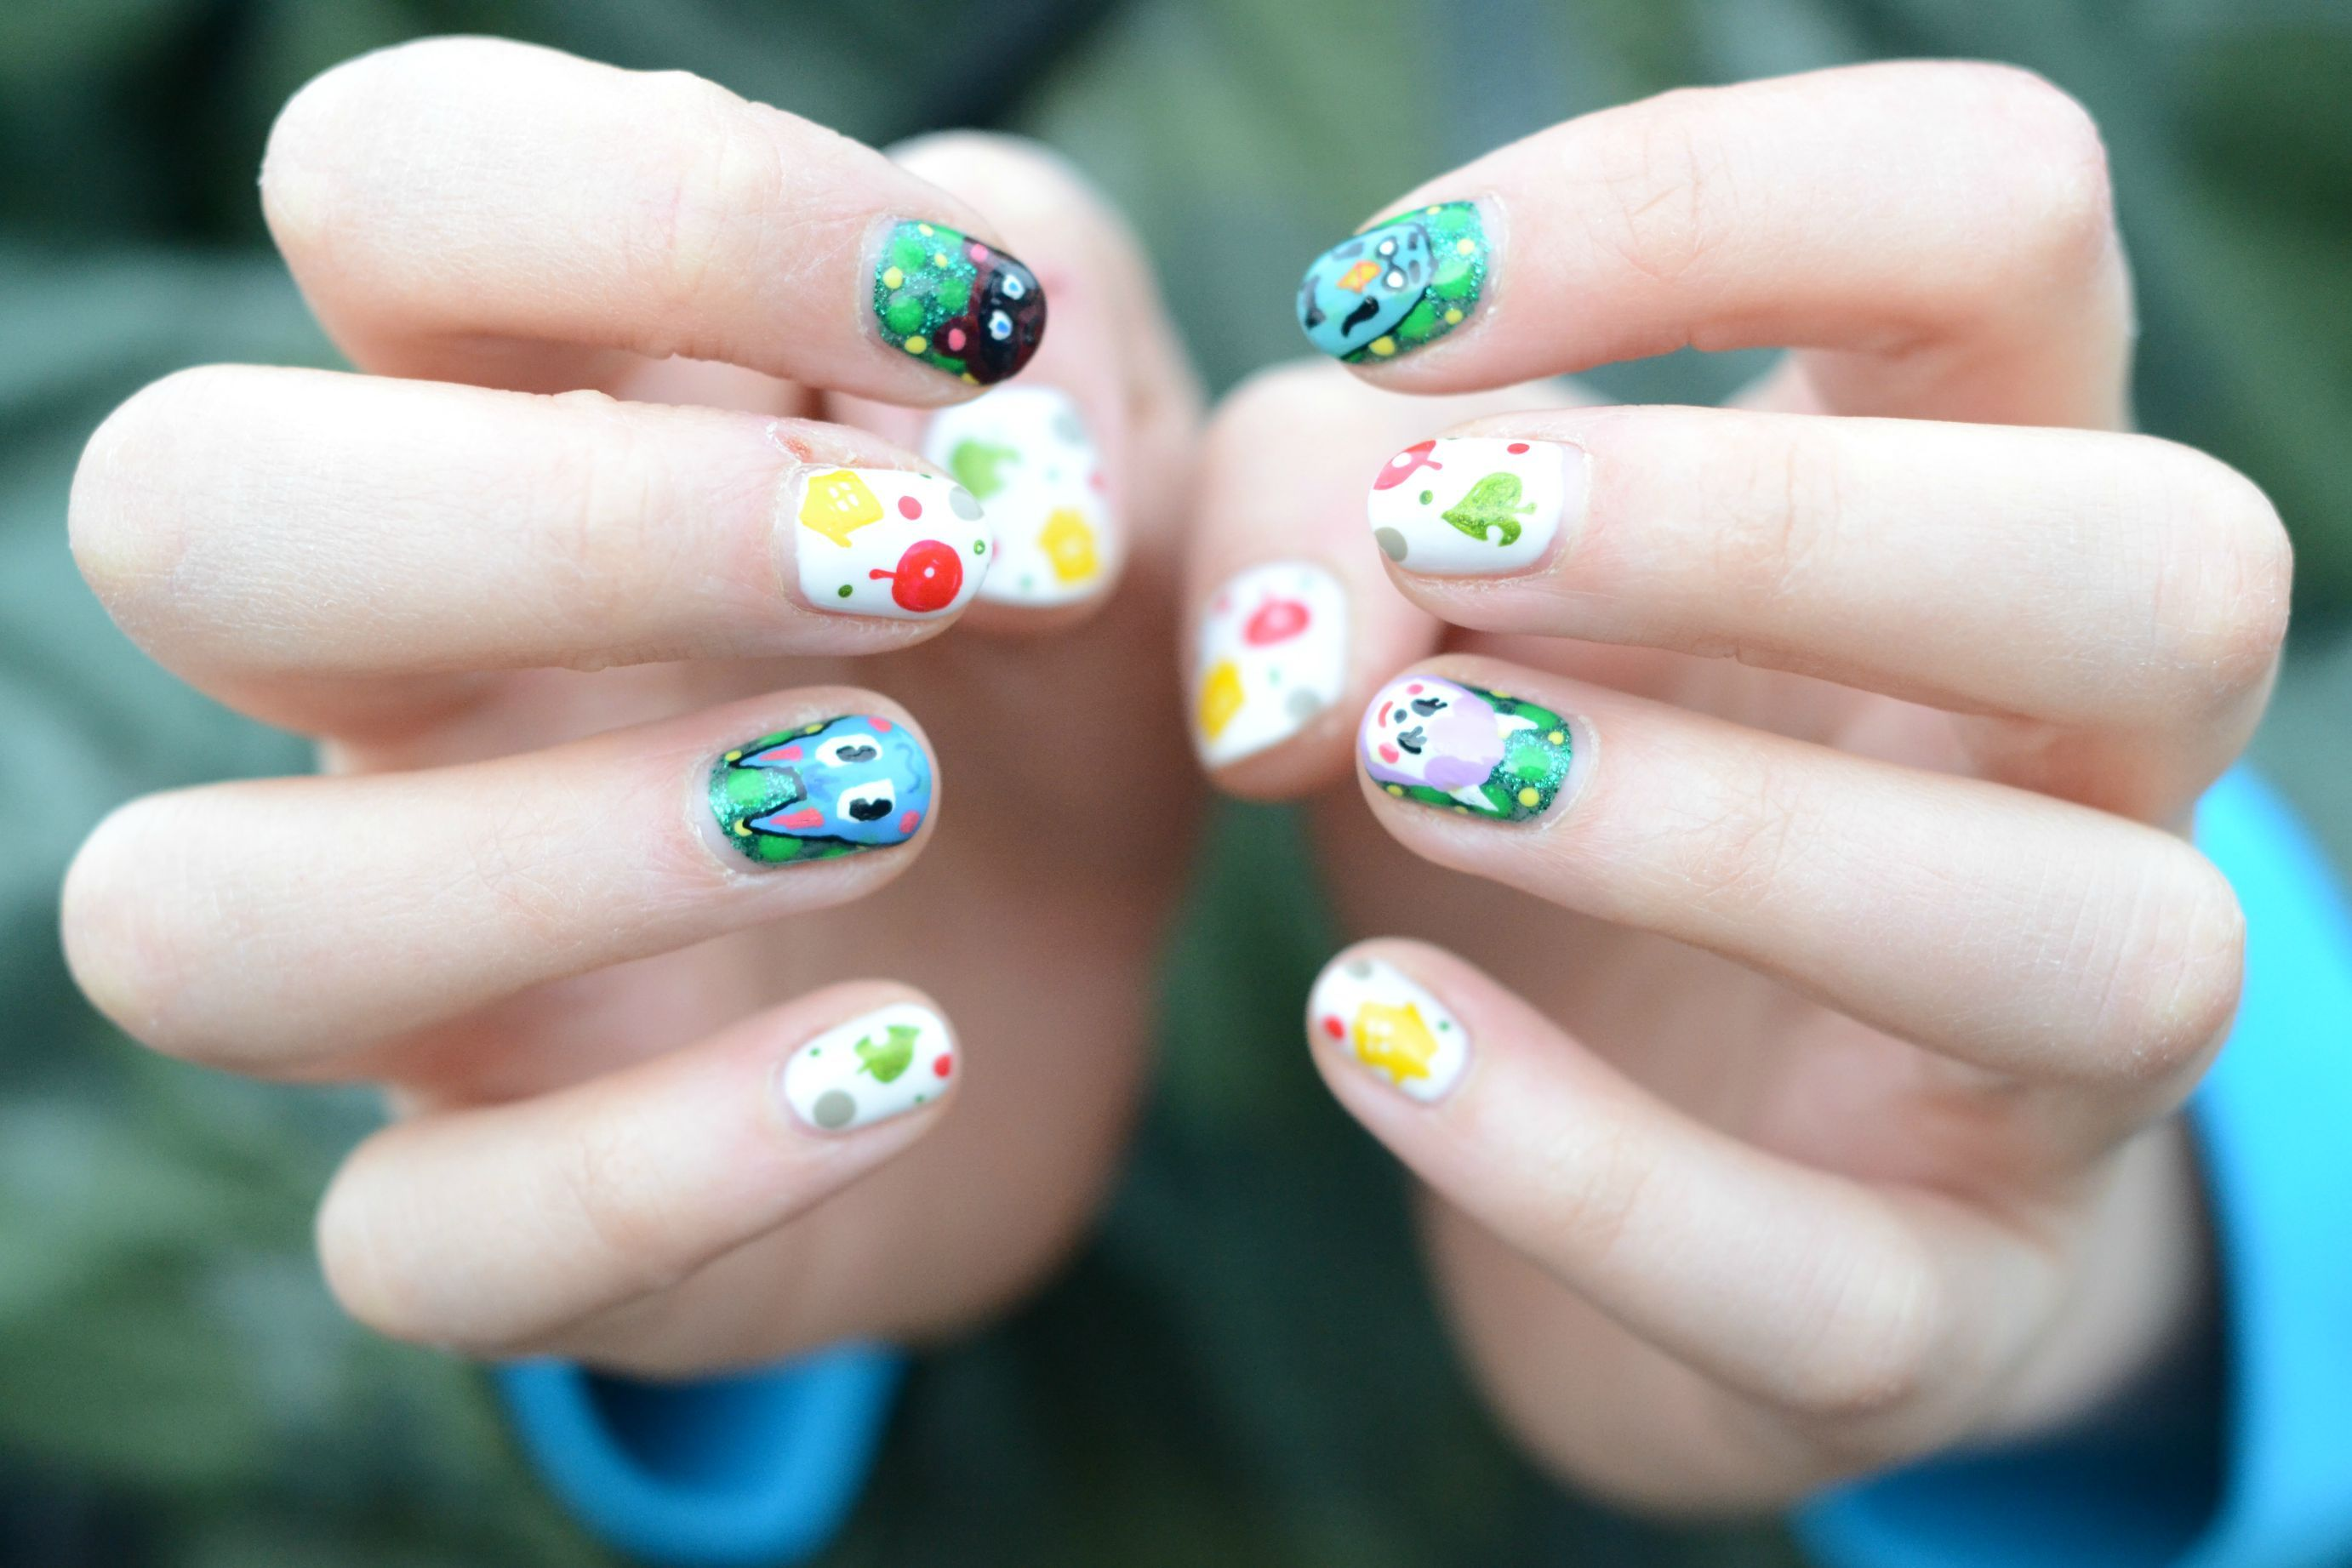 Animal Crossing nail art ♥ | Video Games and such | Pinterest | Makeup